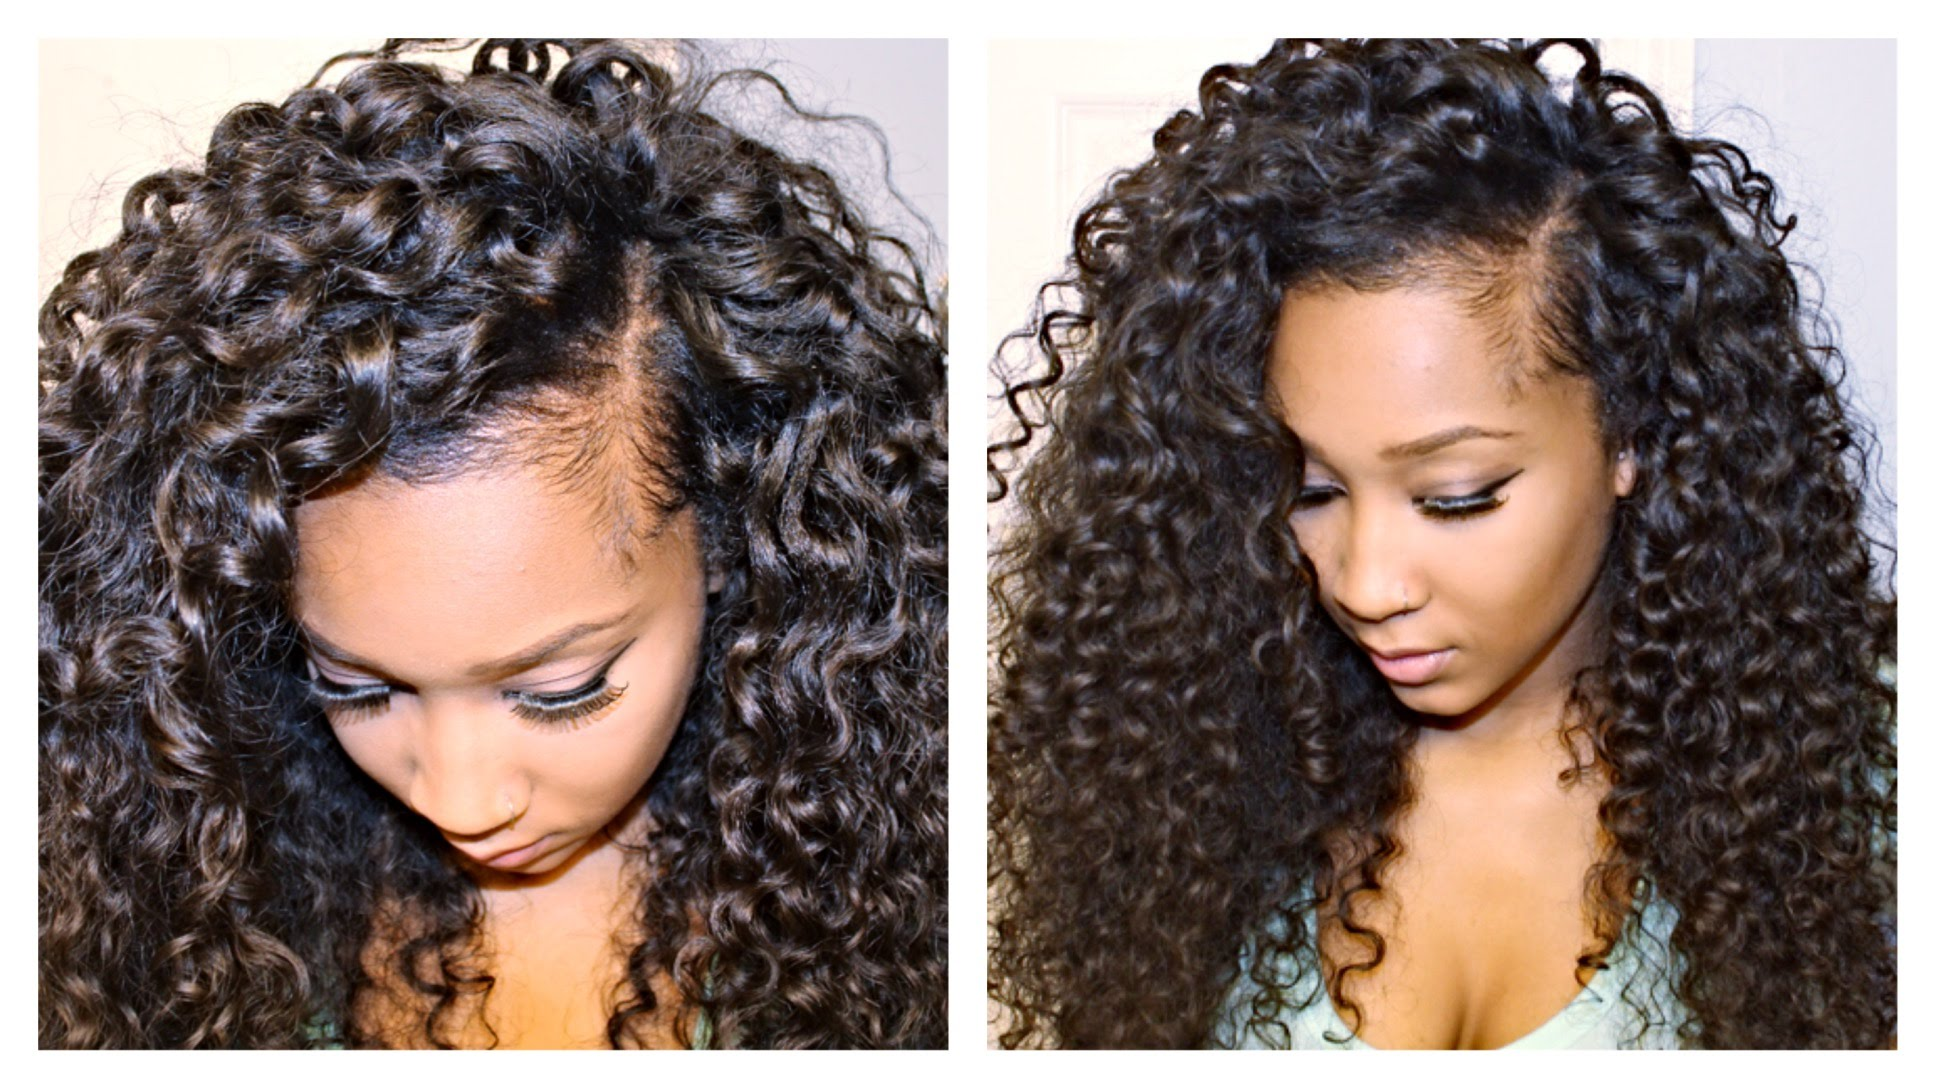 Why Should You Choose Curly Hair Extensions